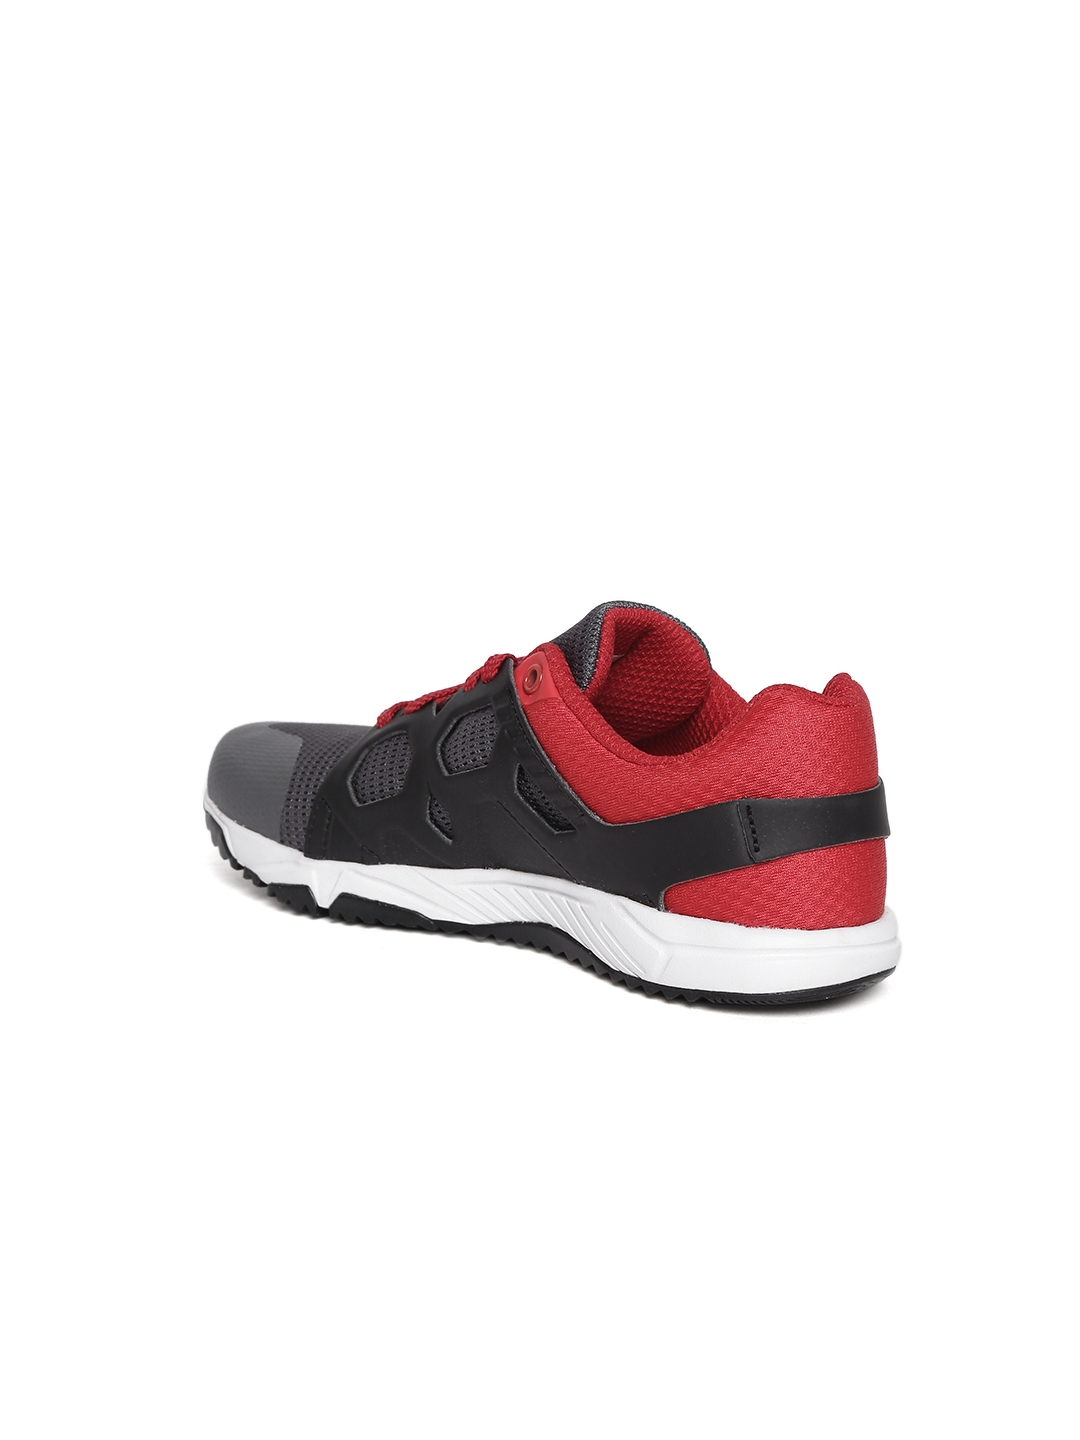 cac27e6ac33d Buy Reebok Boys Grey Gusto Running Shoes - Sports Shoes for Boys ...